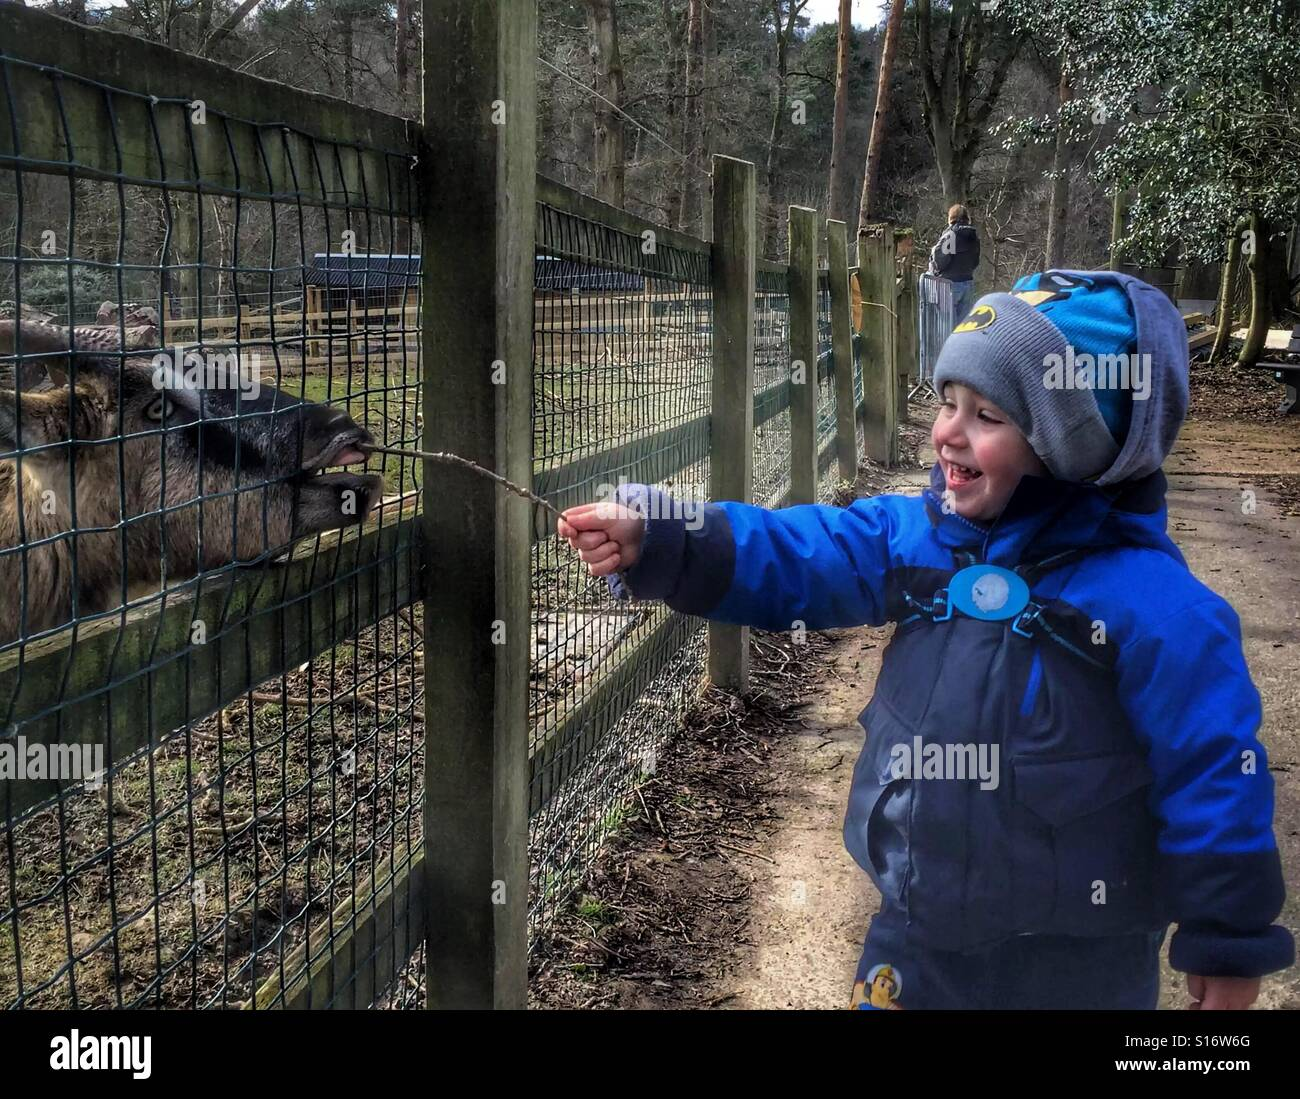 Young lad feeding a goat with a twig - Stock Image